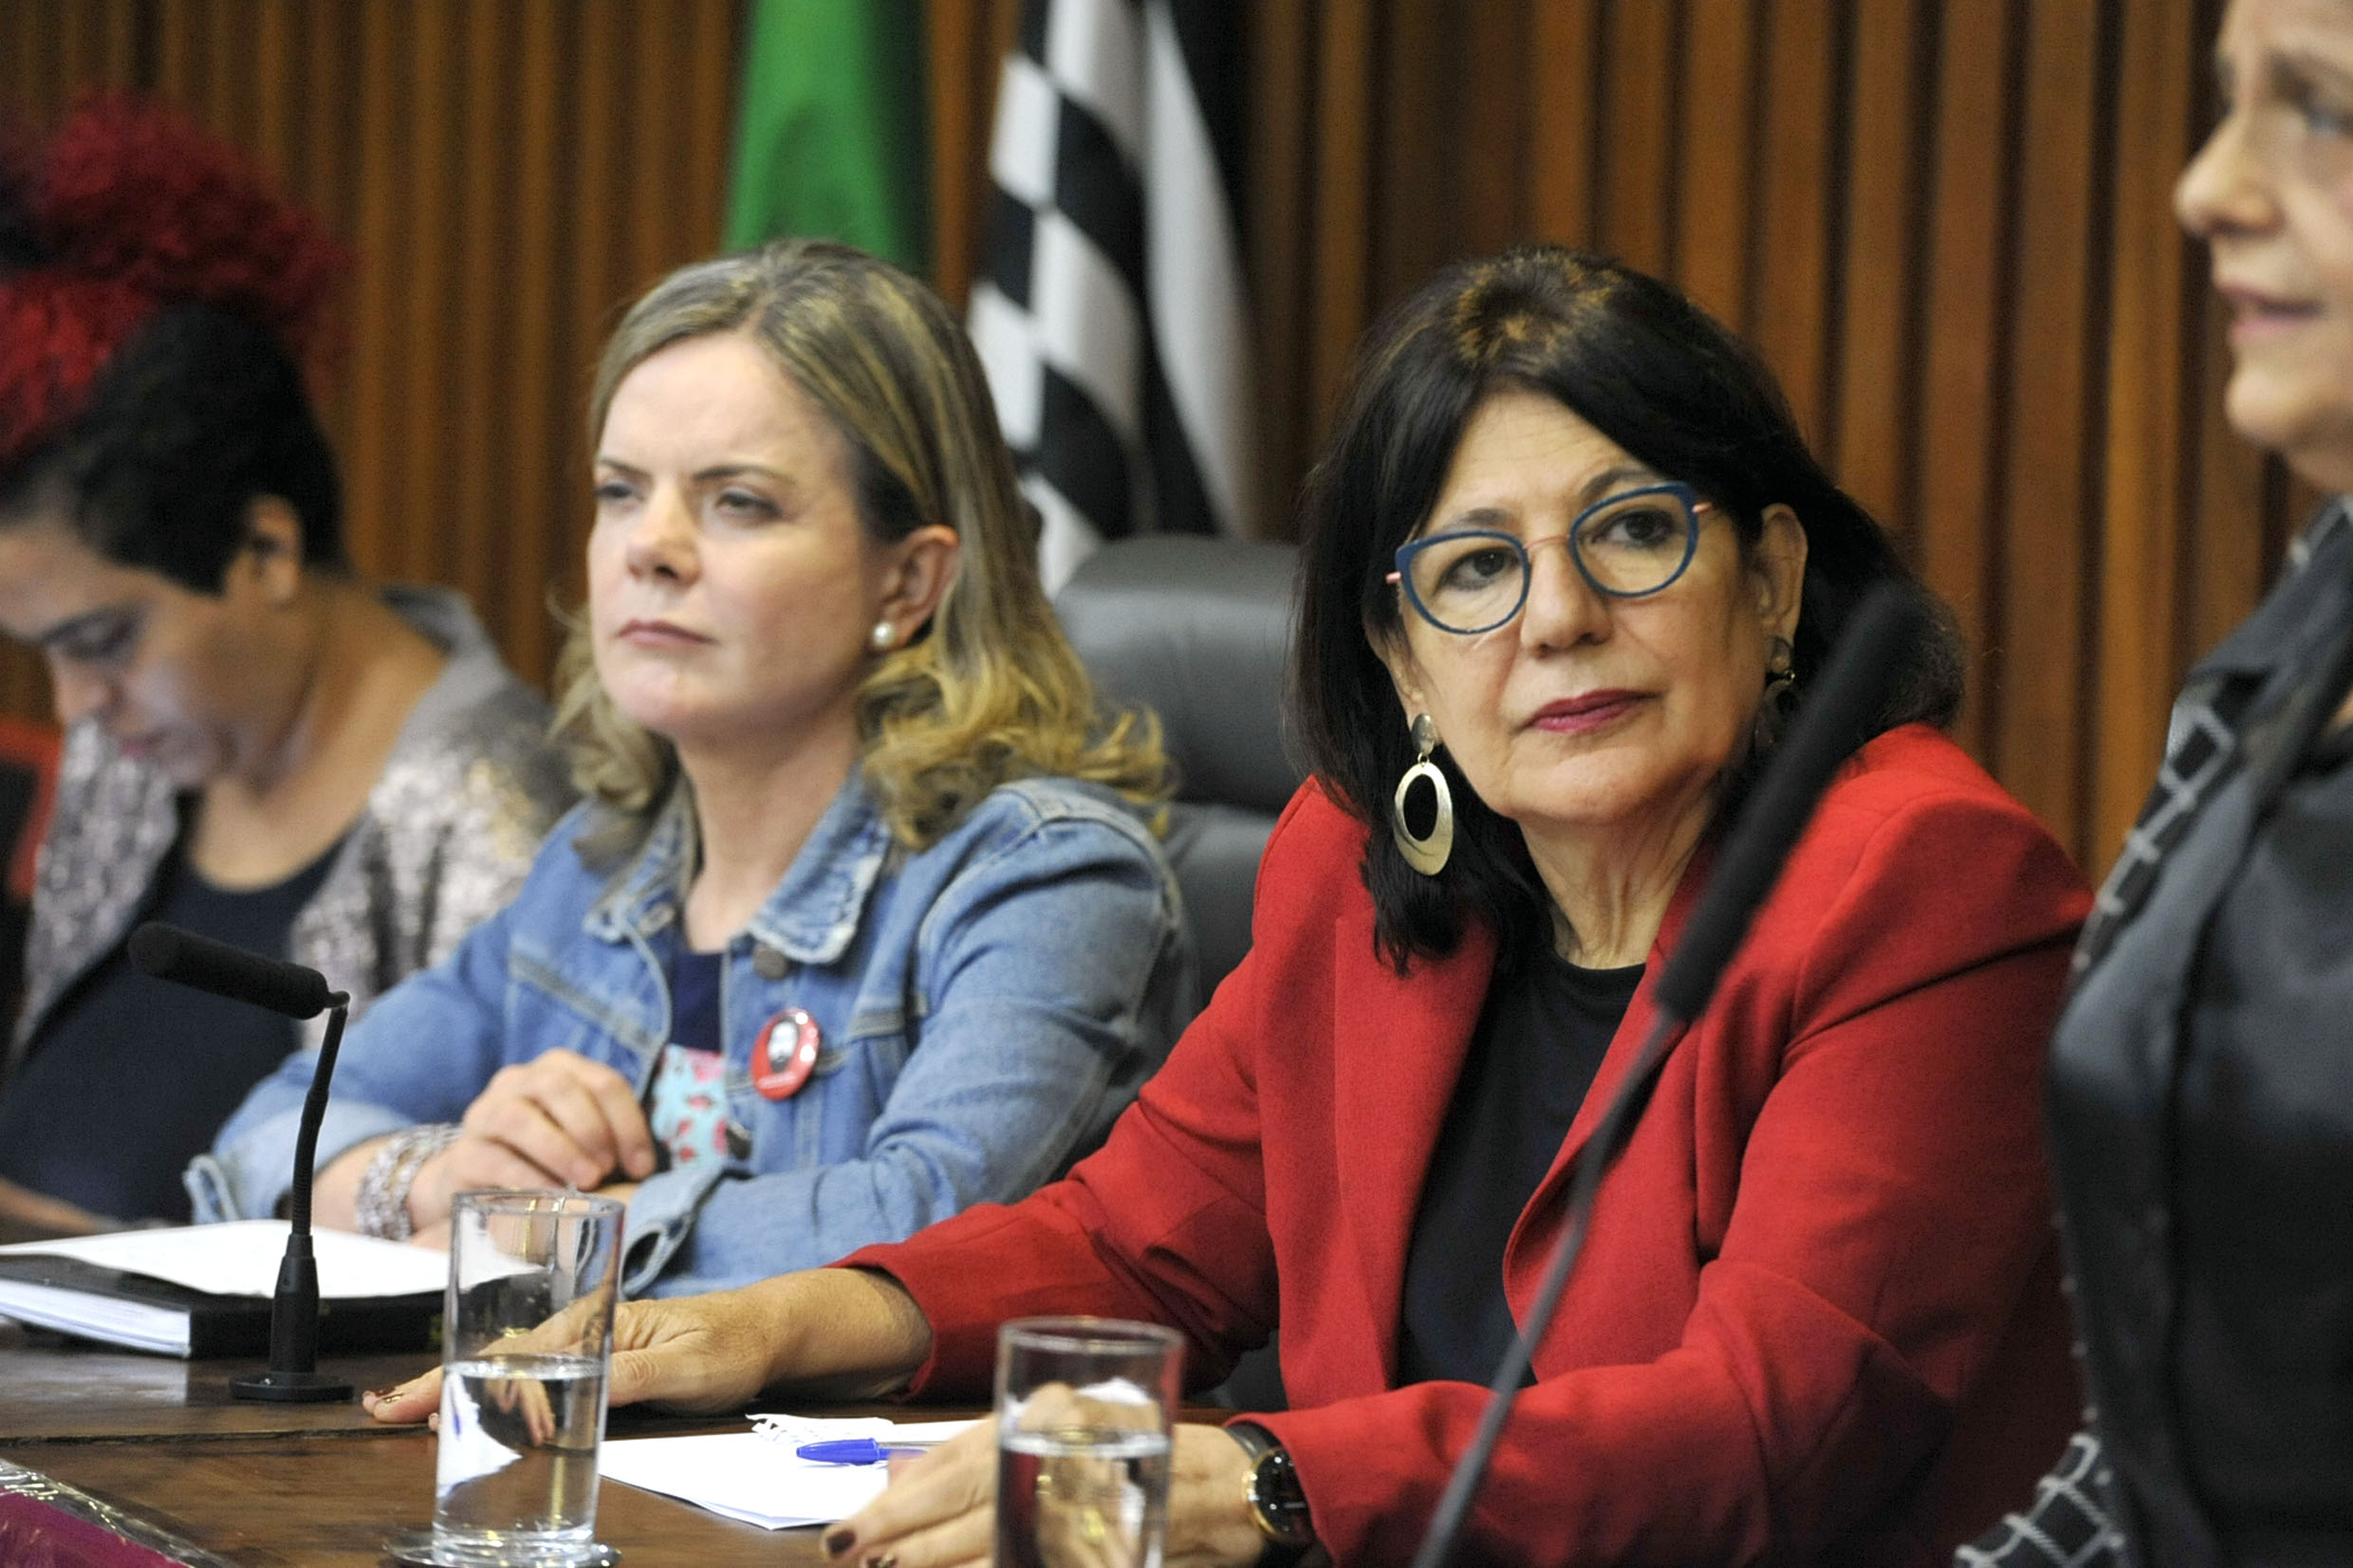 Gleisi Hoffmann e Beth Sahão<a style='float:right' href='https://www3.al.sp.gov.br/repositorio/noticia/N-05-2019/fg233870.jpg' target=_blank><img src='/_img/material-file-download-white.png' width='14px' alt='Clique para baixar a imagem'></a>